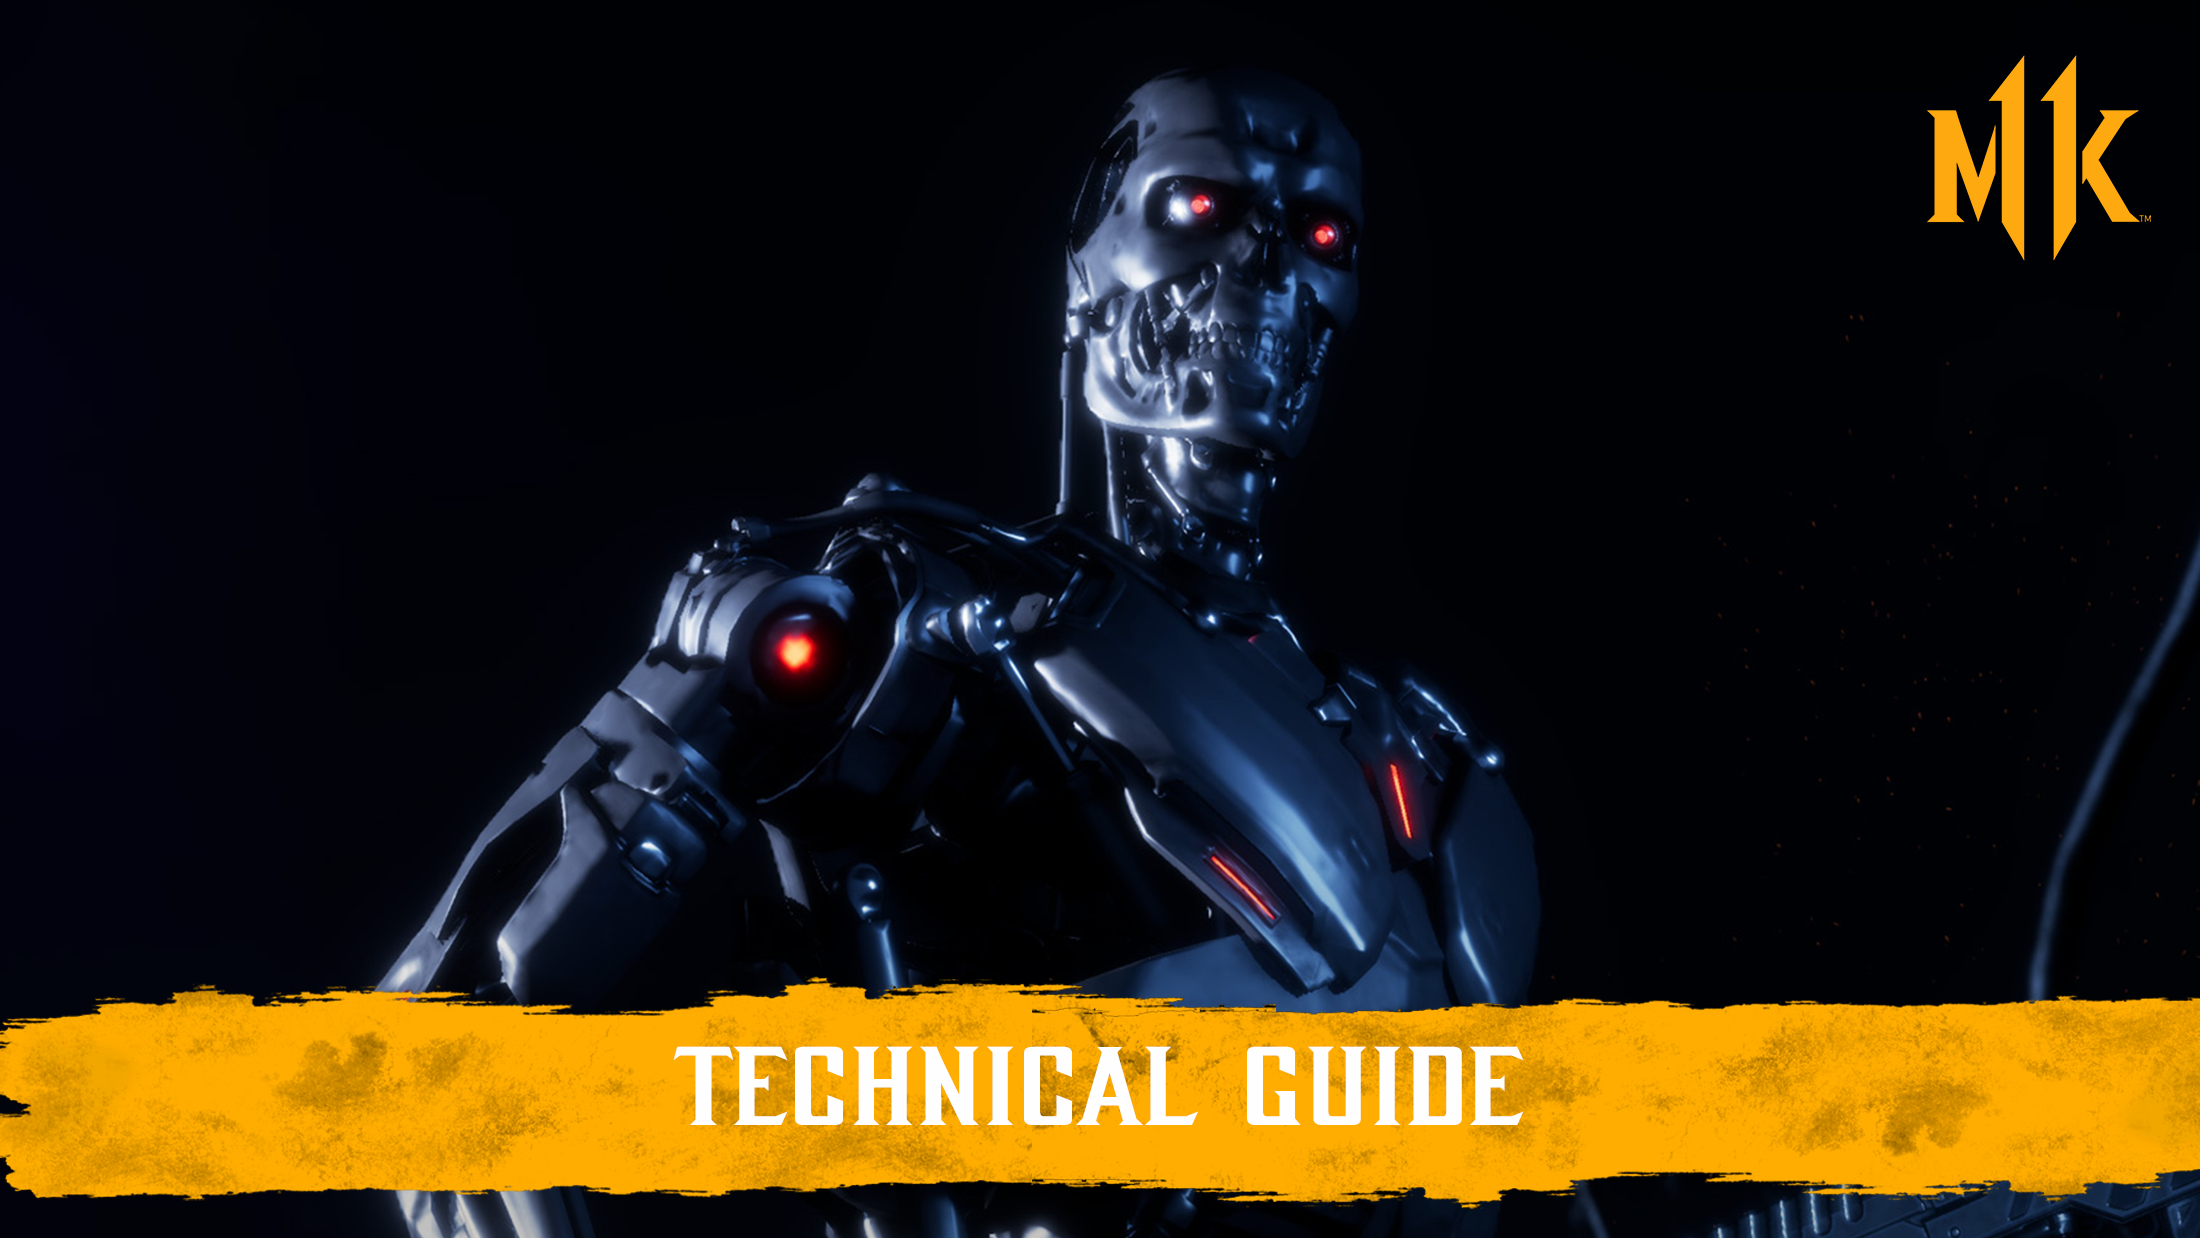 TECHNICAL_GUIDE2.png